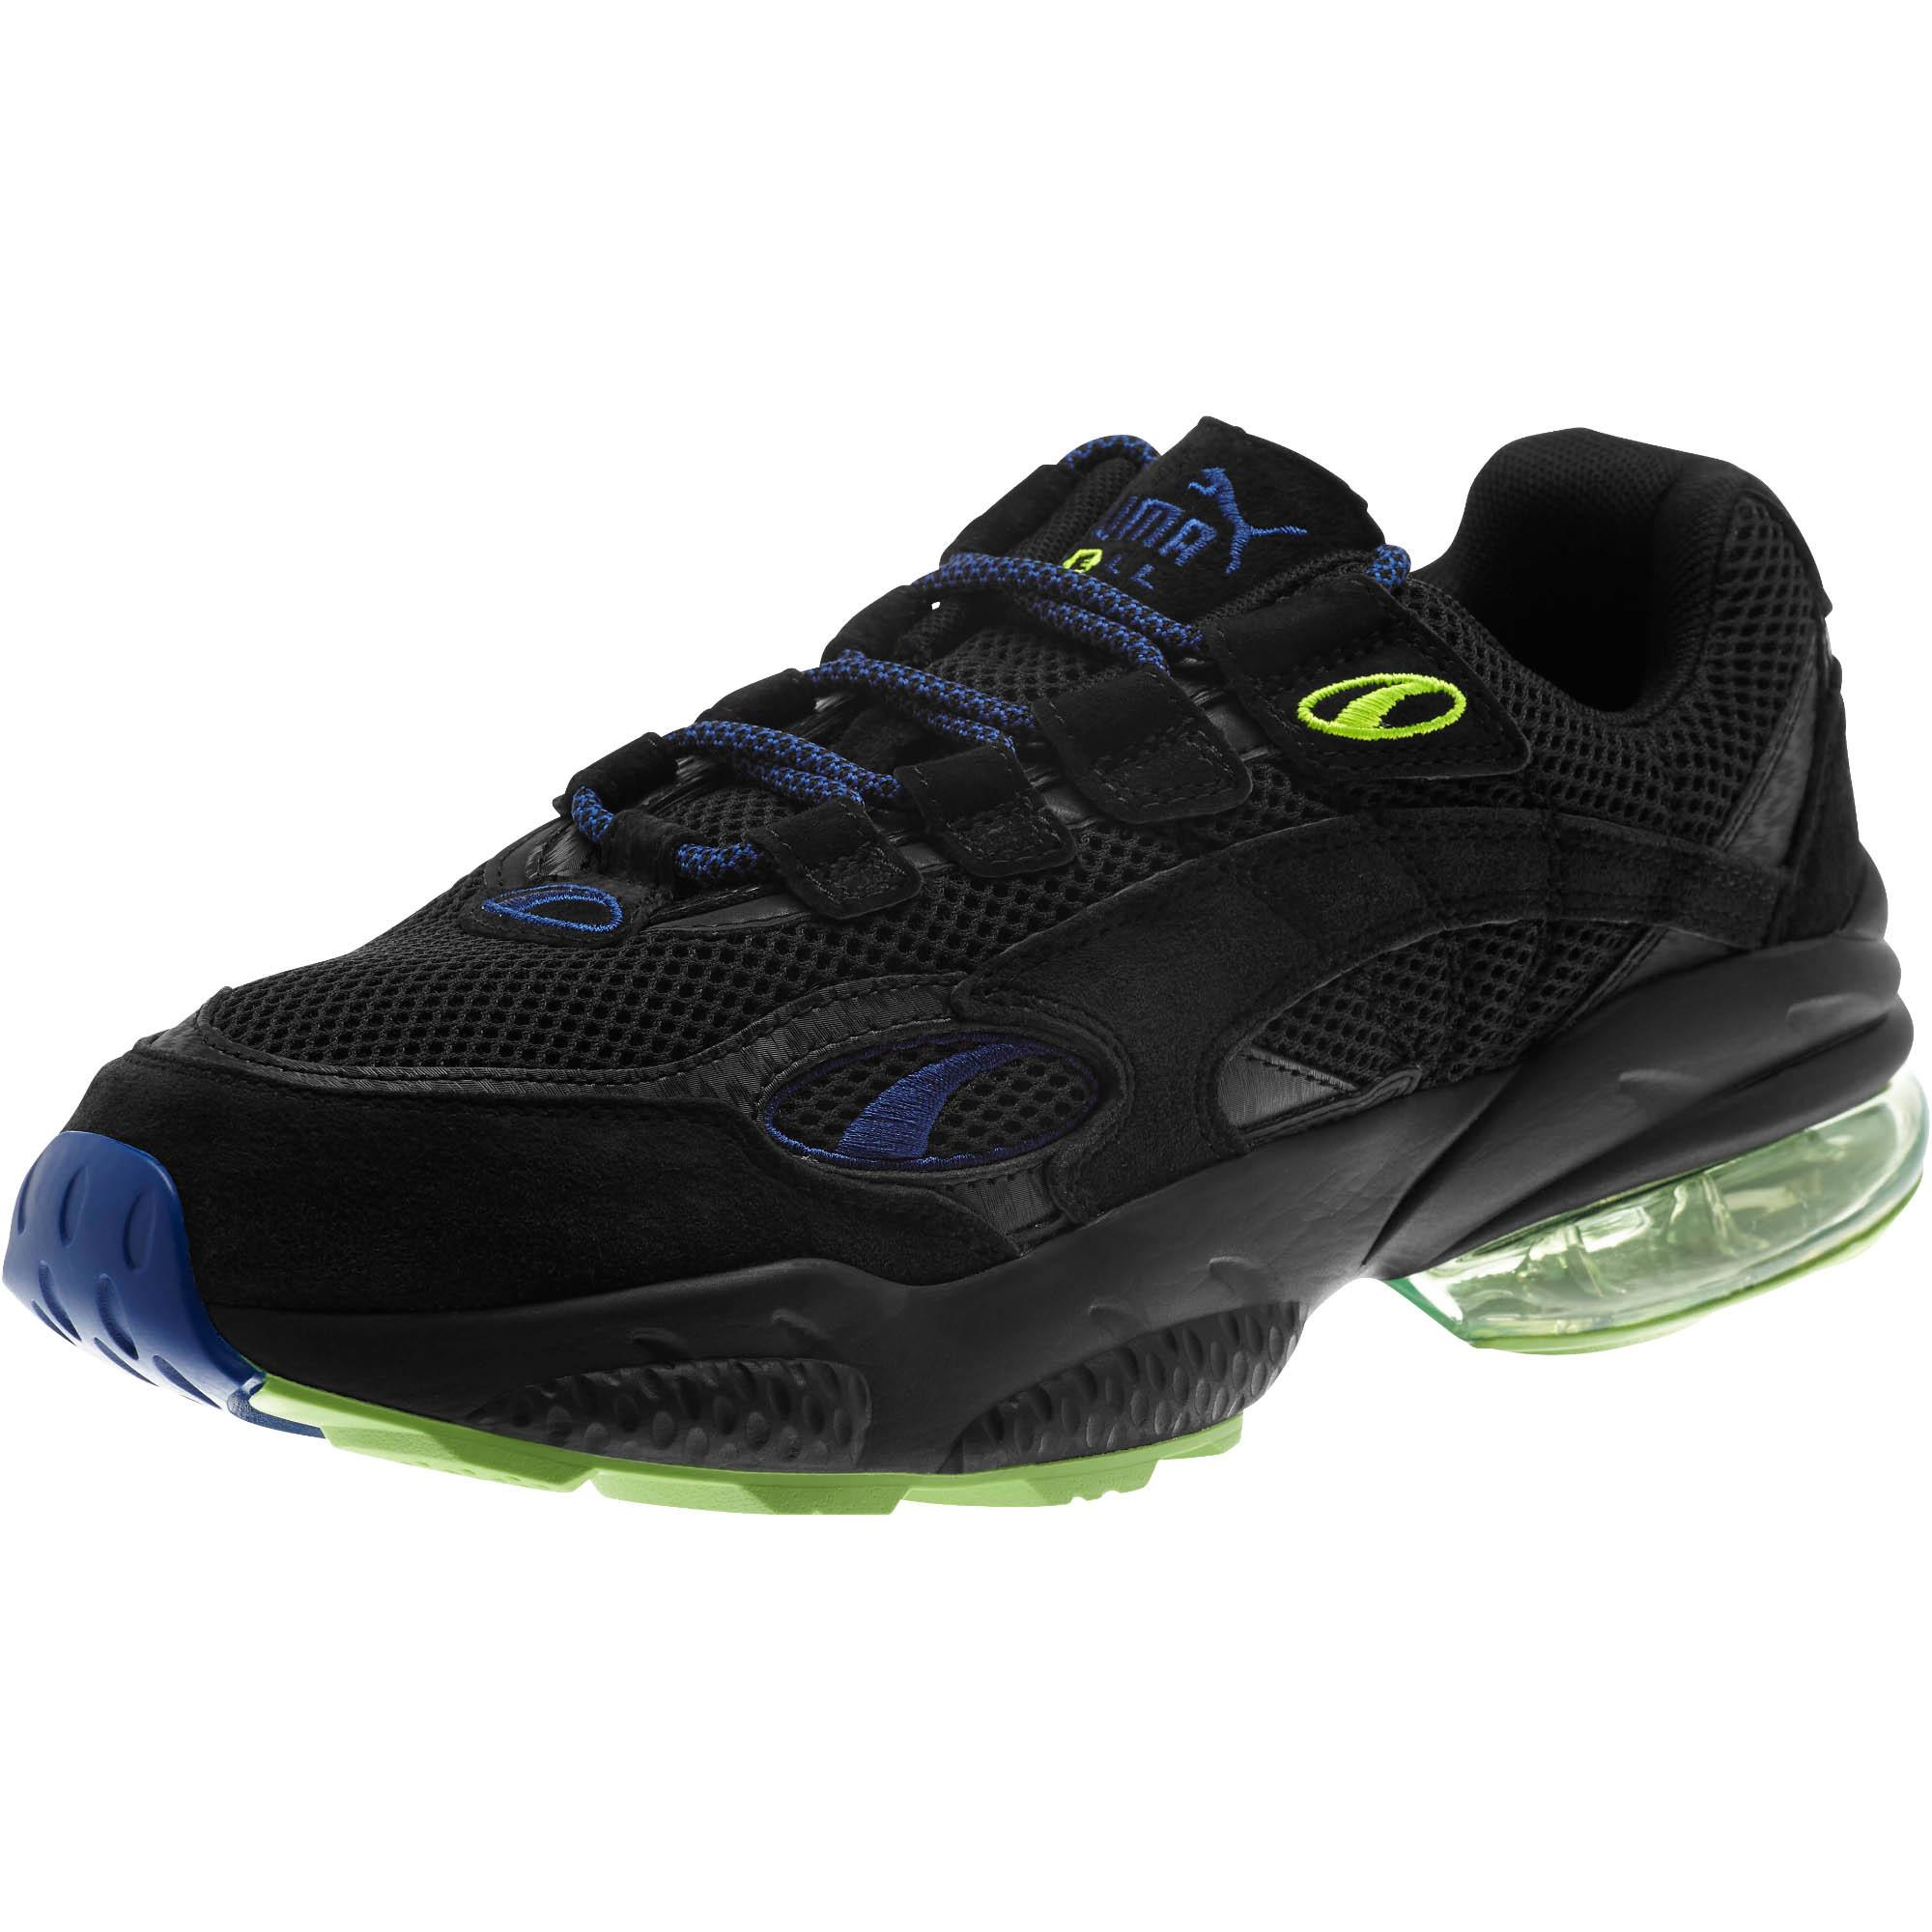 38850467720 Lyst - PUMA Cell Venom Nv Sneakers in Black for Men